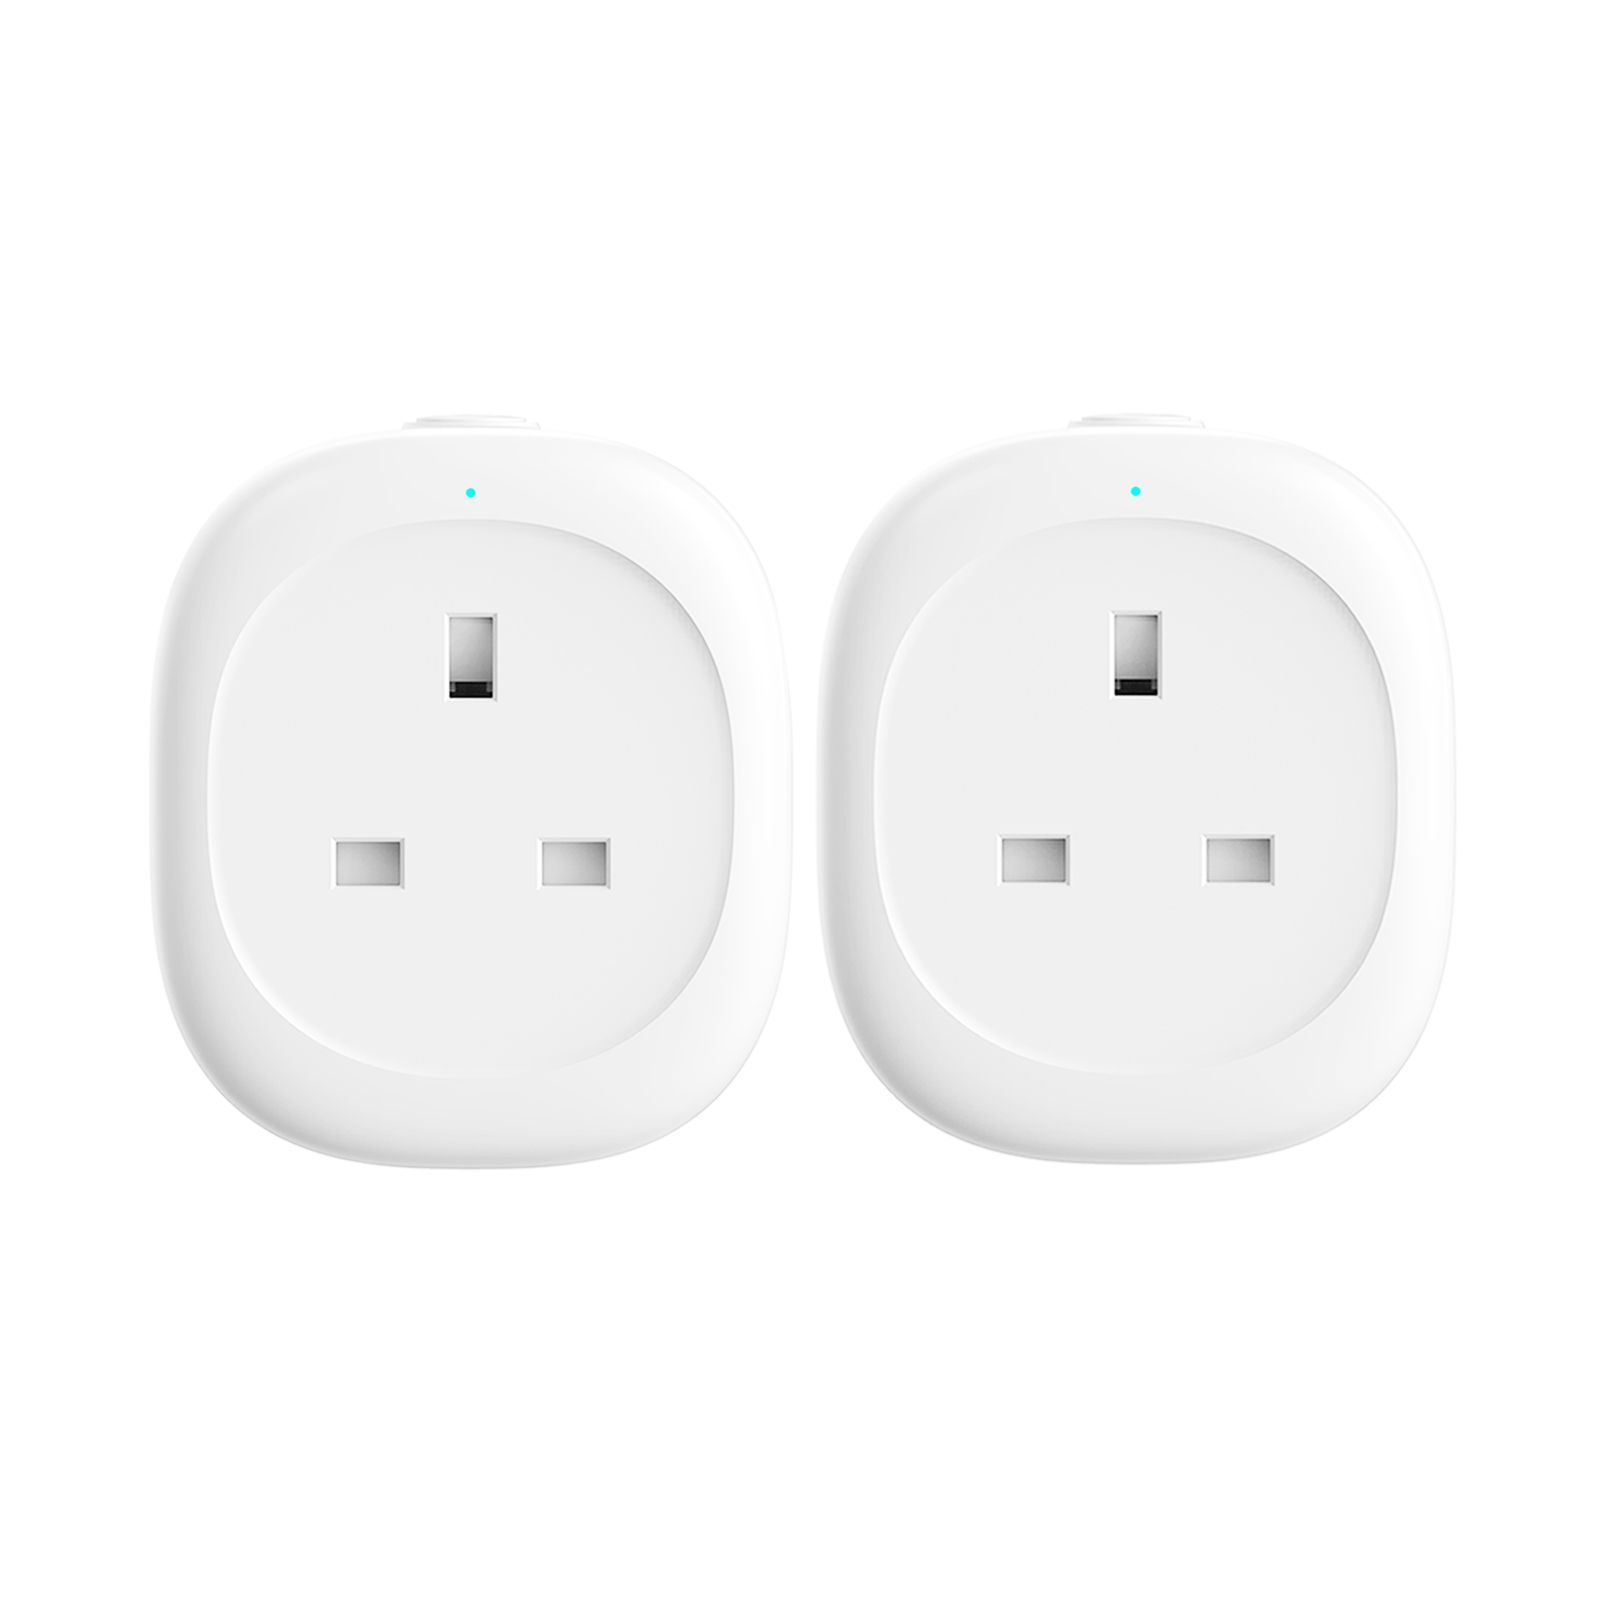 WiFi Smart Plug, Woostar WiFi Plug Sockets Compatible with Amazon Alexa/Google Assistant/IFTTT, Wireless Plug with Timer Function, Remote Control Your Devices from Anywhere by Phone (2-Pack)